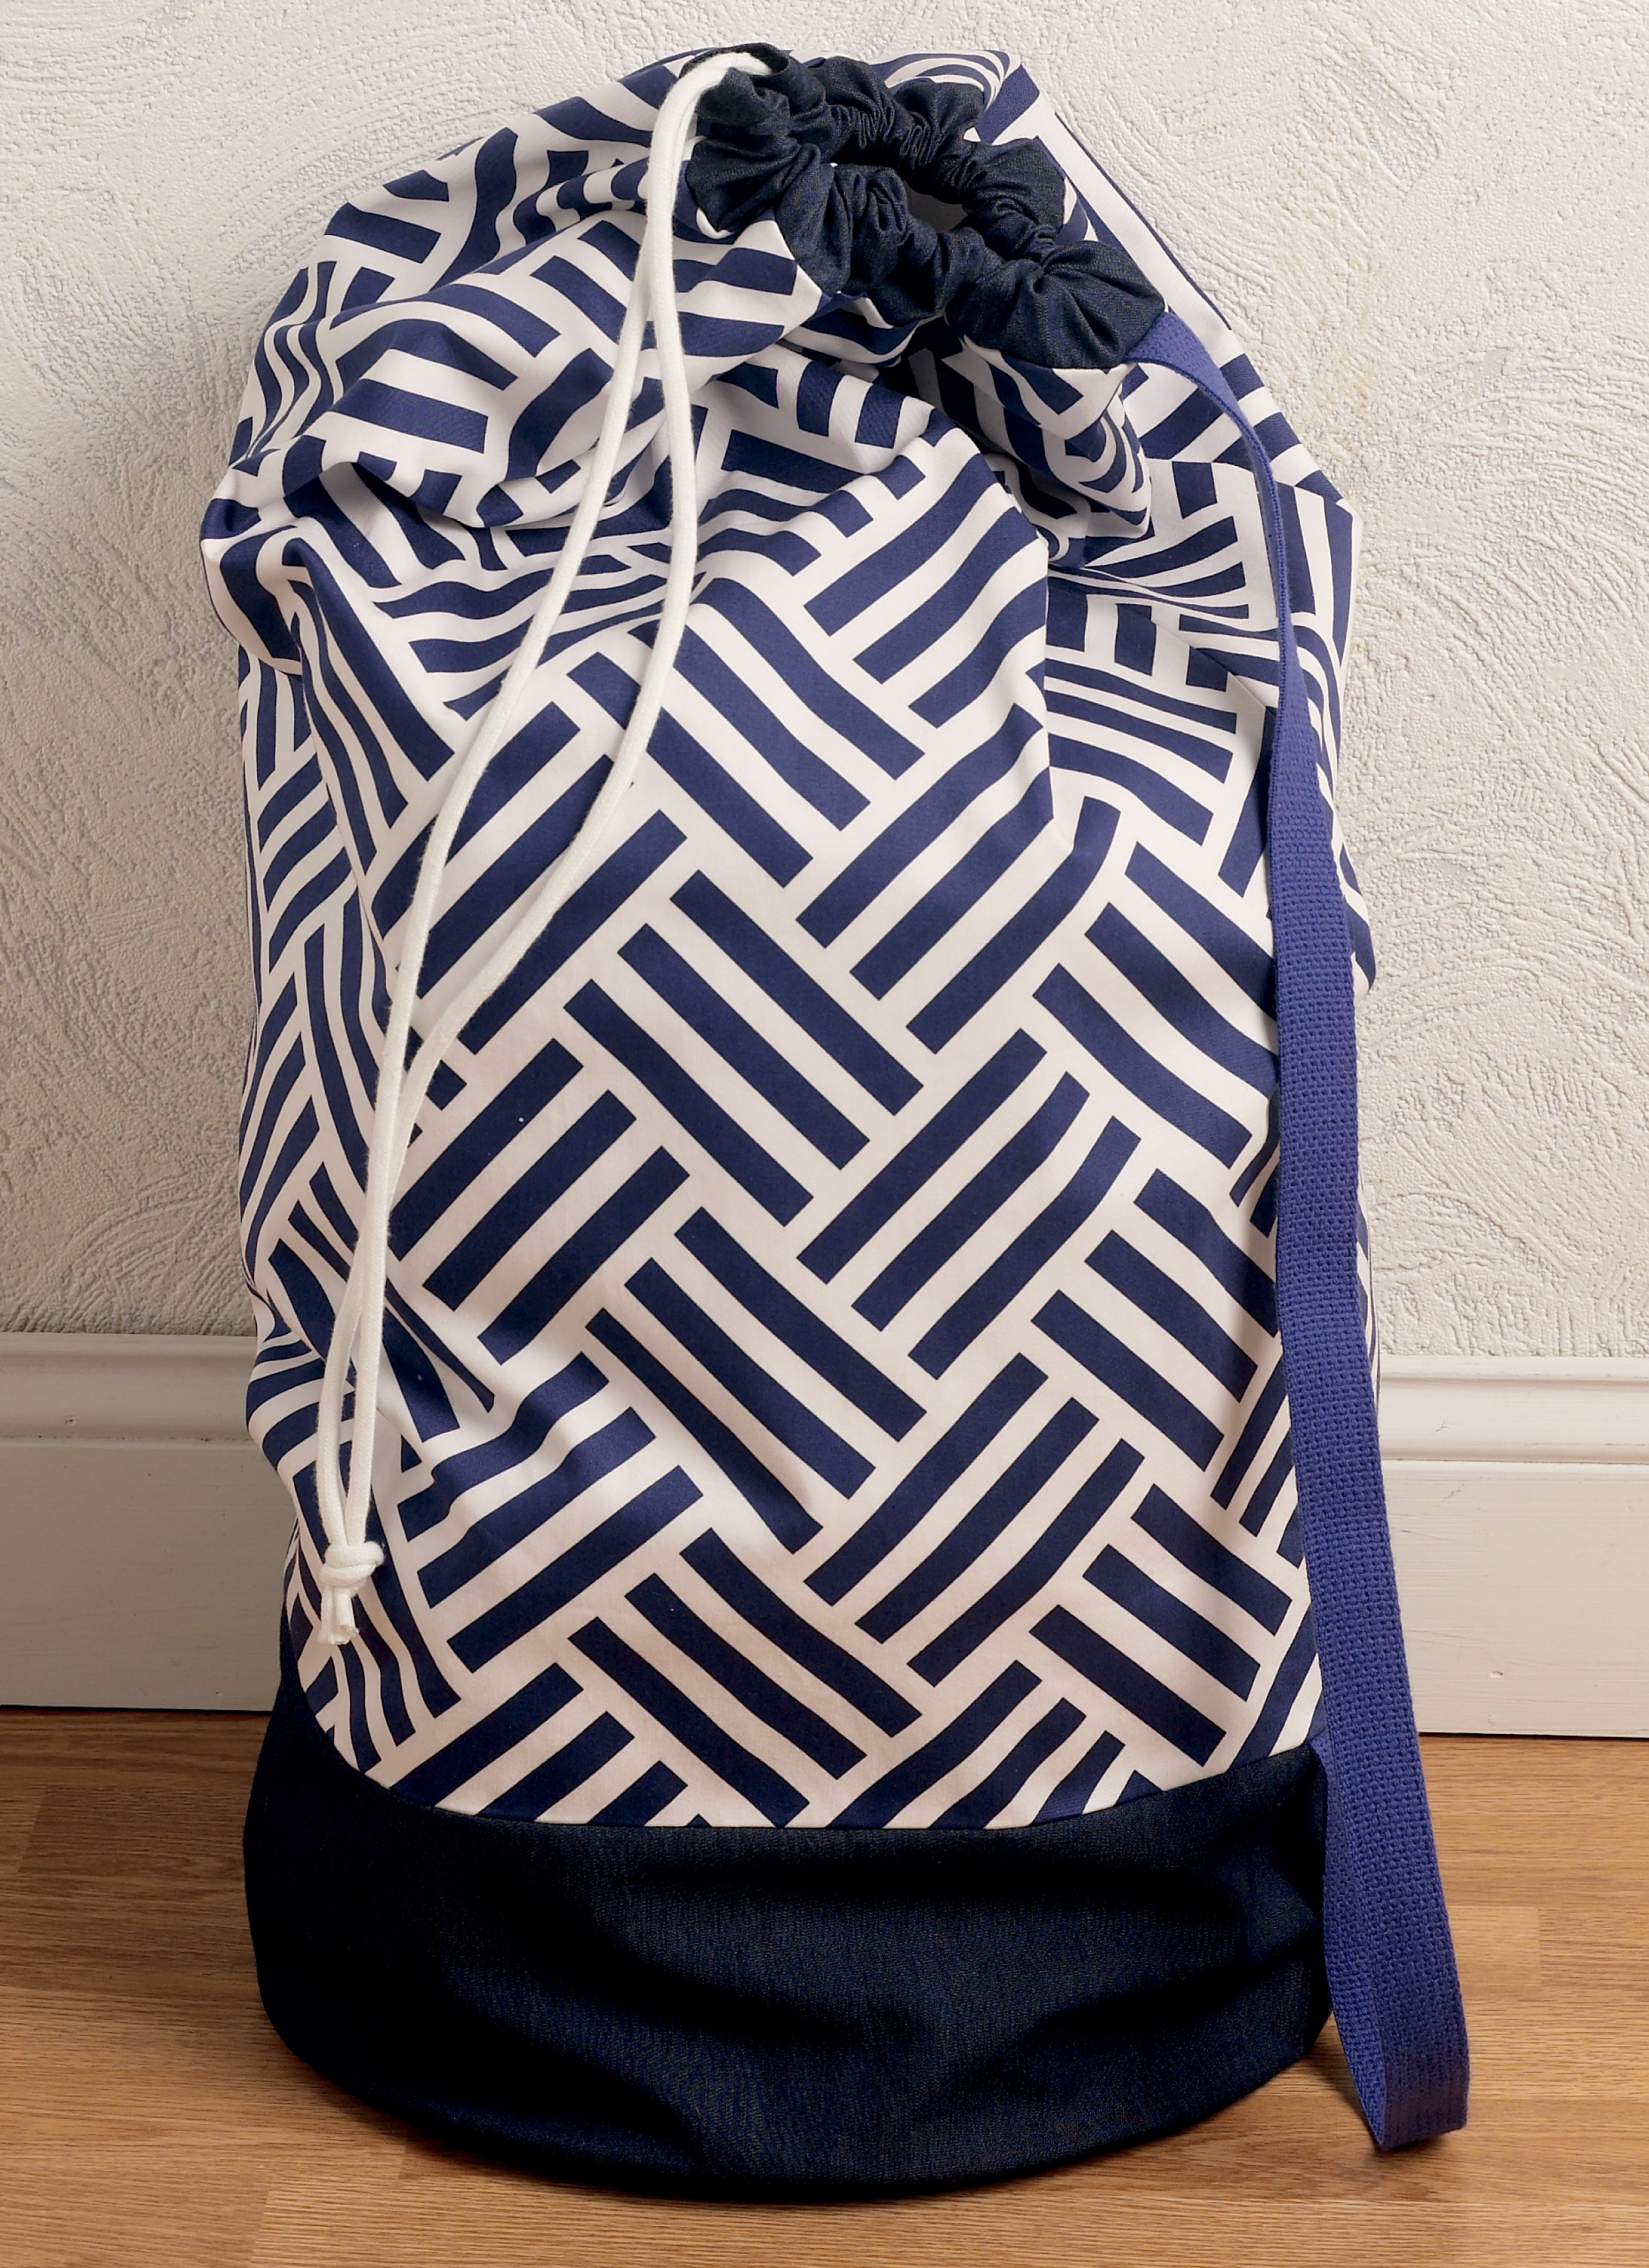 Kwik Sew 4185 Drawstring Laundry Bags in Two Sizes